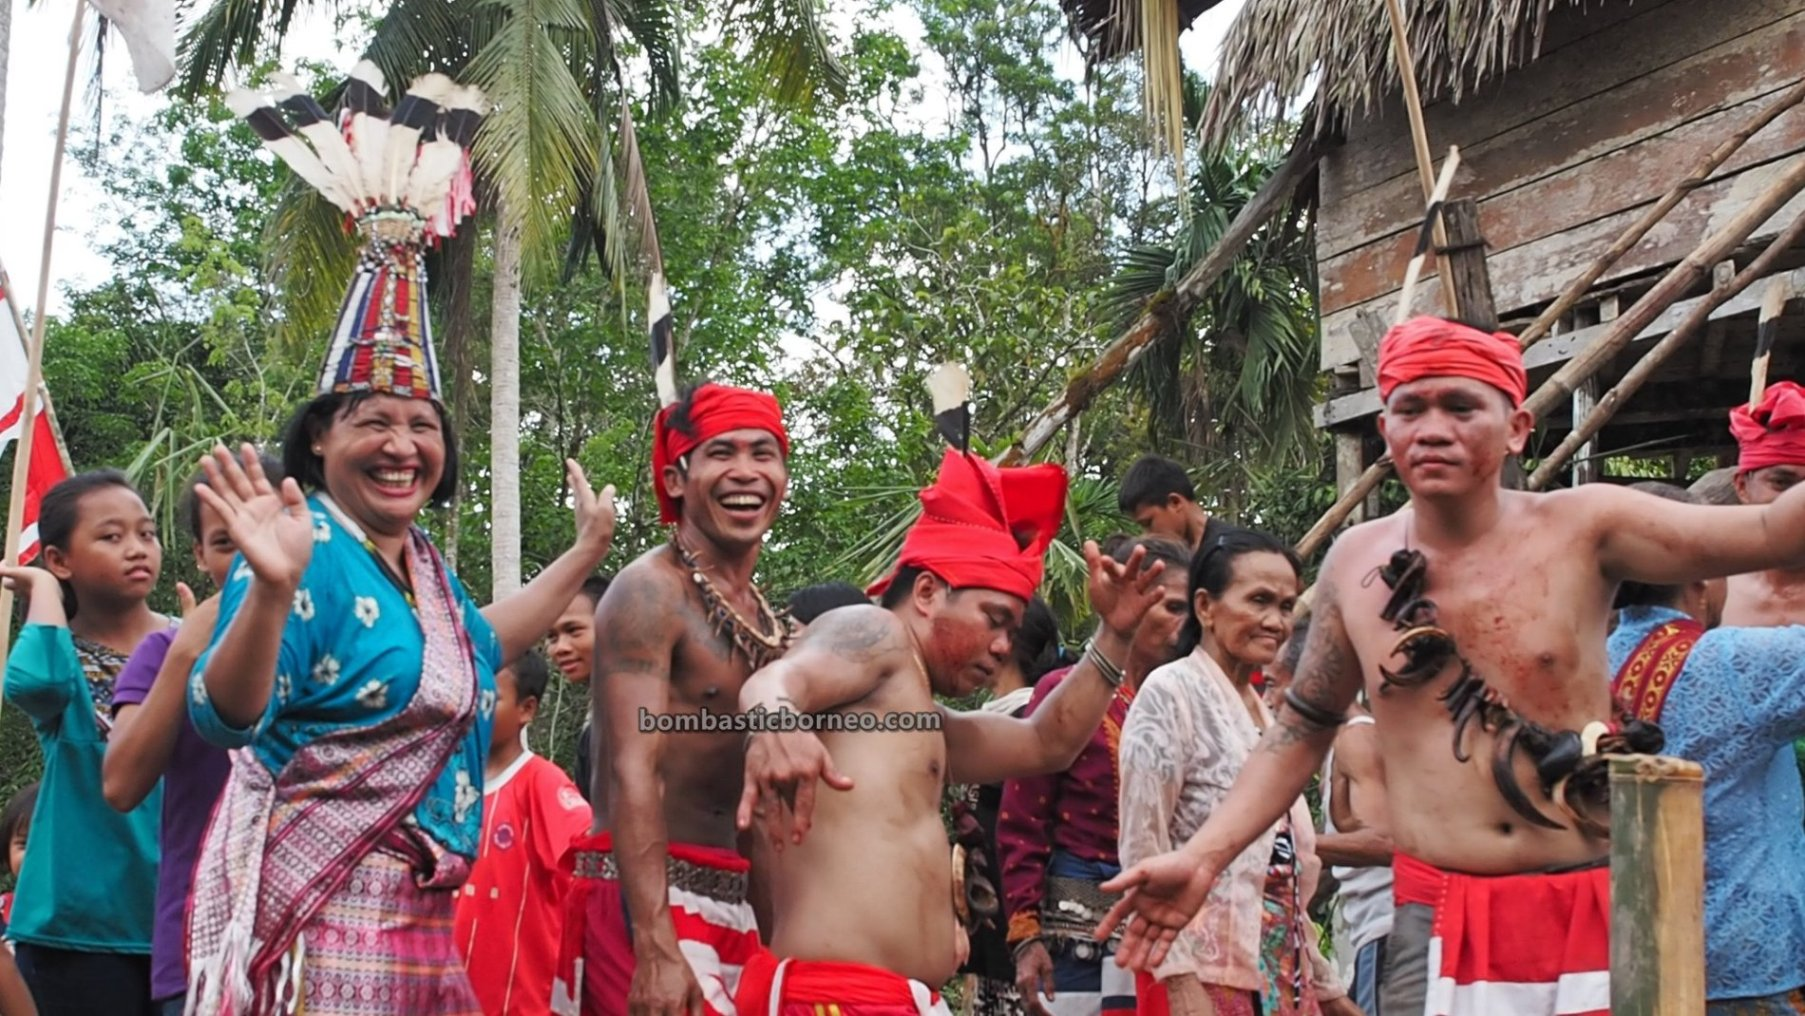 Gawai Nyobeng, Rice Harvest Festival, authentic, backpackers, Culture, event, Kalimantan Barat, Bengkayang, Seluas, indigenous, obyek wisata, Tourism, Cross Border, 婆罗洲土著部落, 印尼西加里曼丹, 孟加映原住民丰收节,